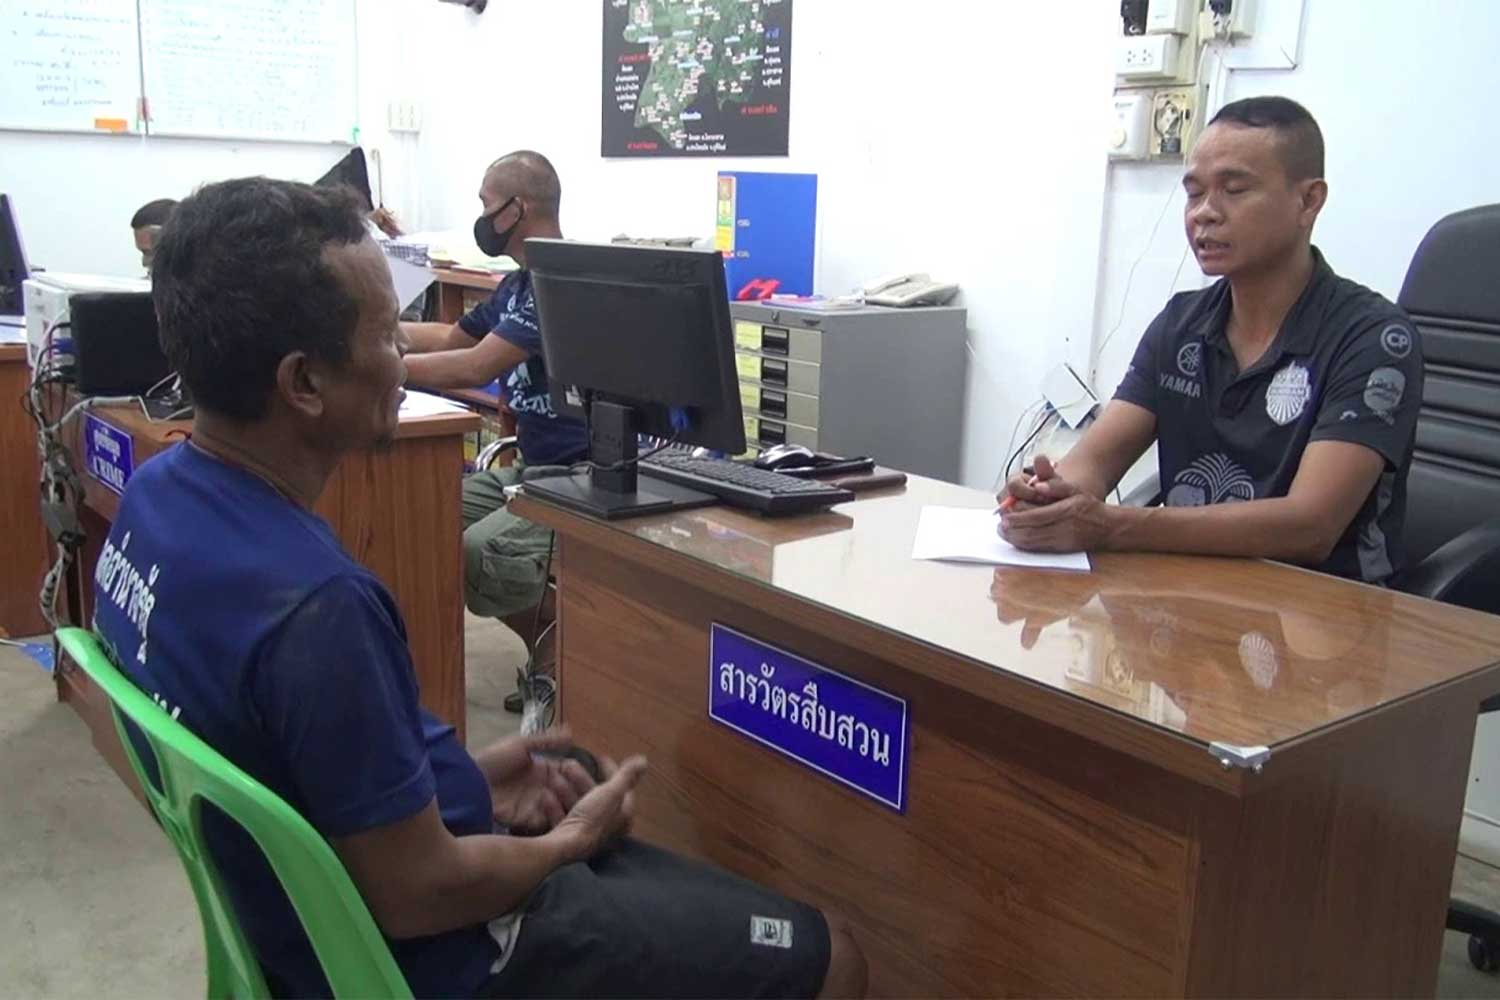 The 50-year-old suspect is interrogated by a police officer at Phlapphlachai police station in Buri Ram province, accused of raping a 9-year-old girl he claimed had fallen in love with him. (Photo: Surachai Piragsa)